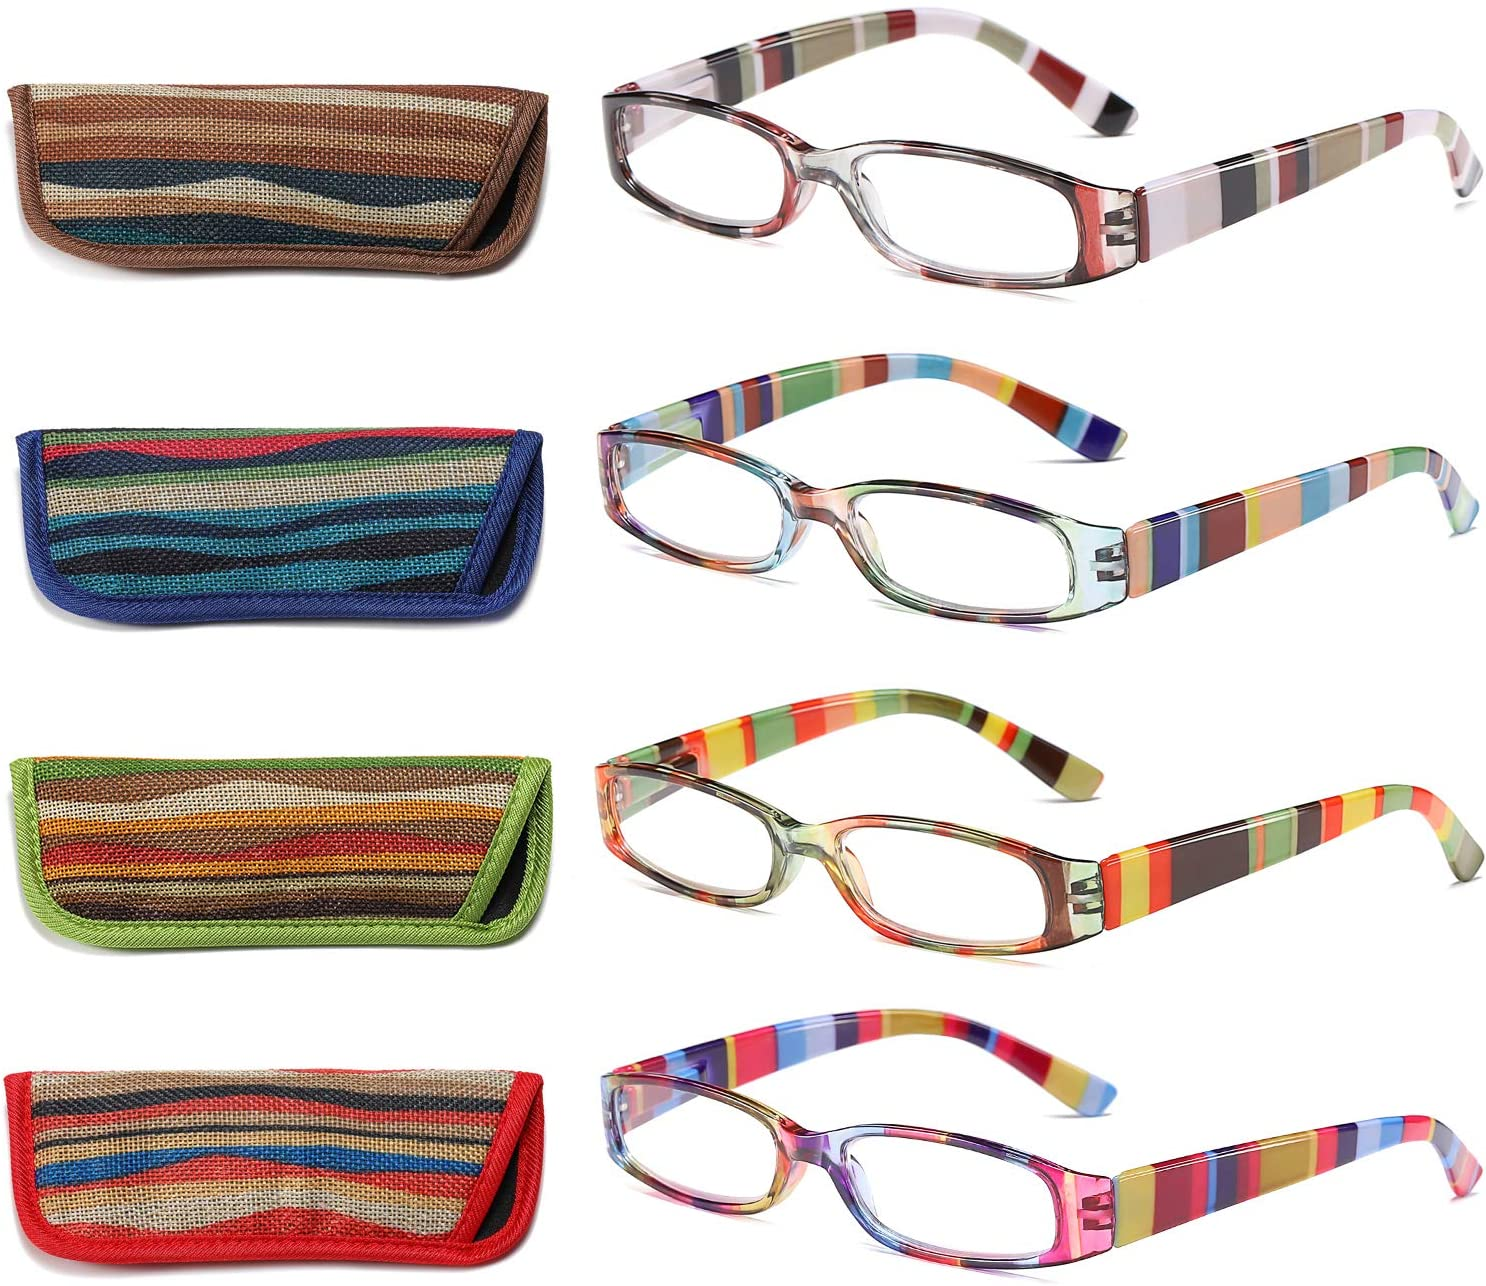 Reading Glasses 4 Pairs Fashion Ladies Readers Spring Hinge with Pattern Print Eyeglasses for Women,+1.50 Diopters